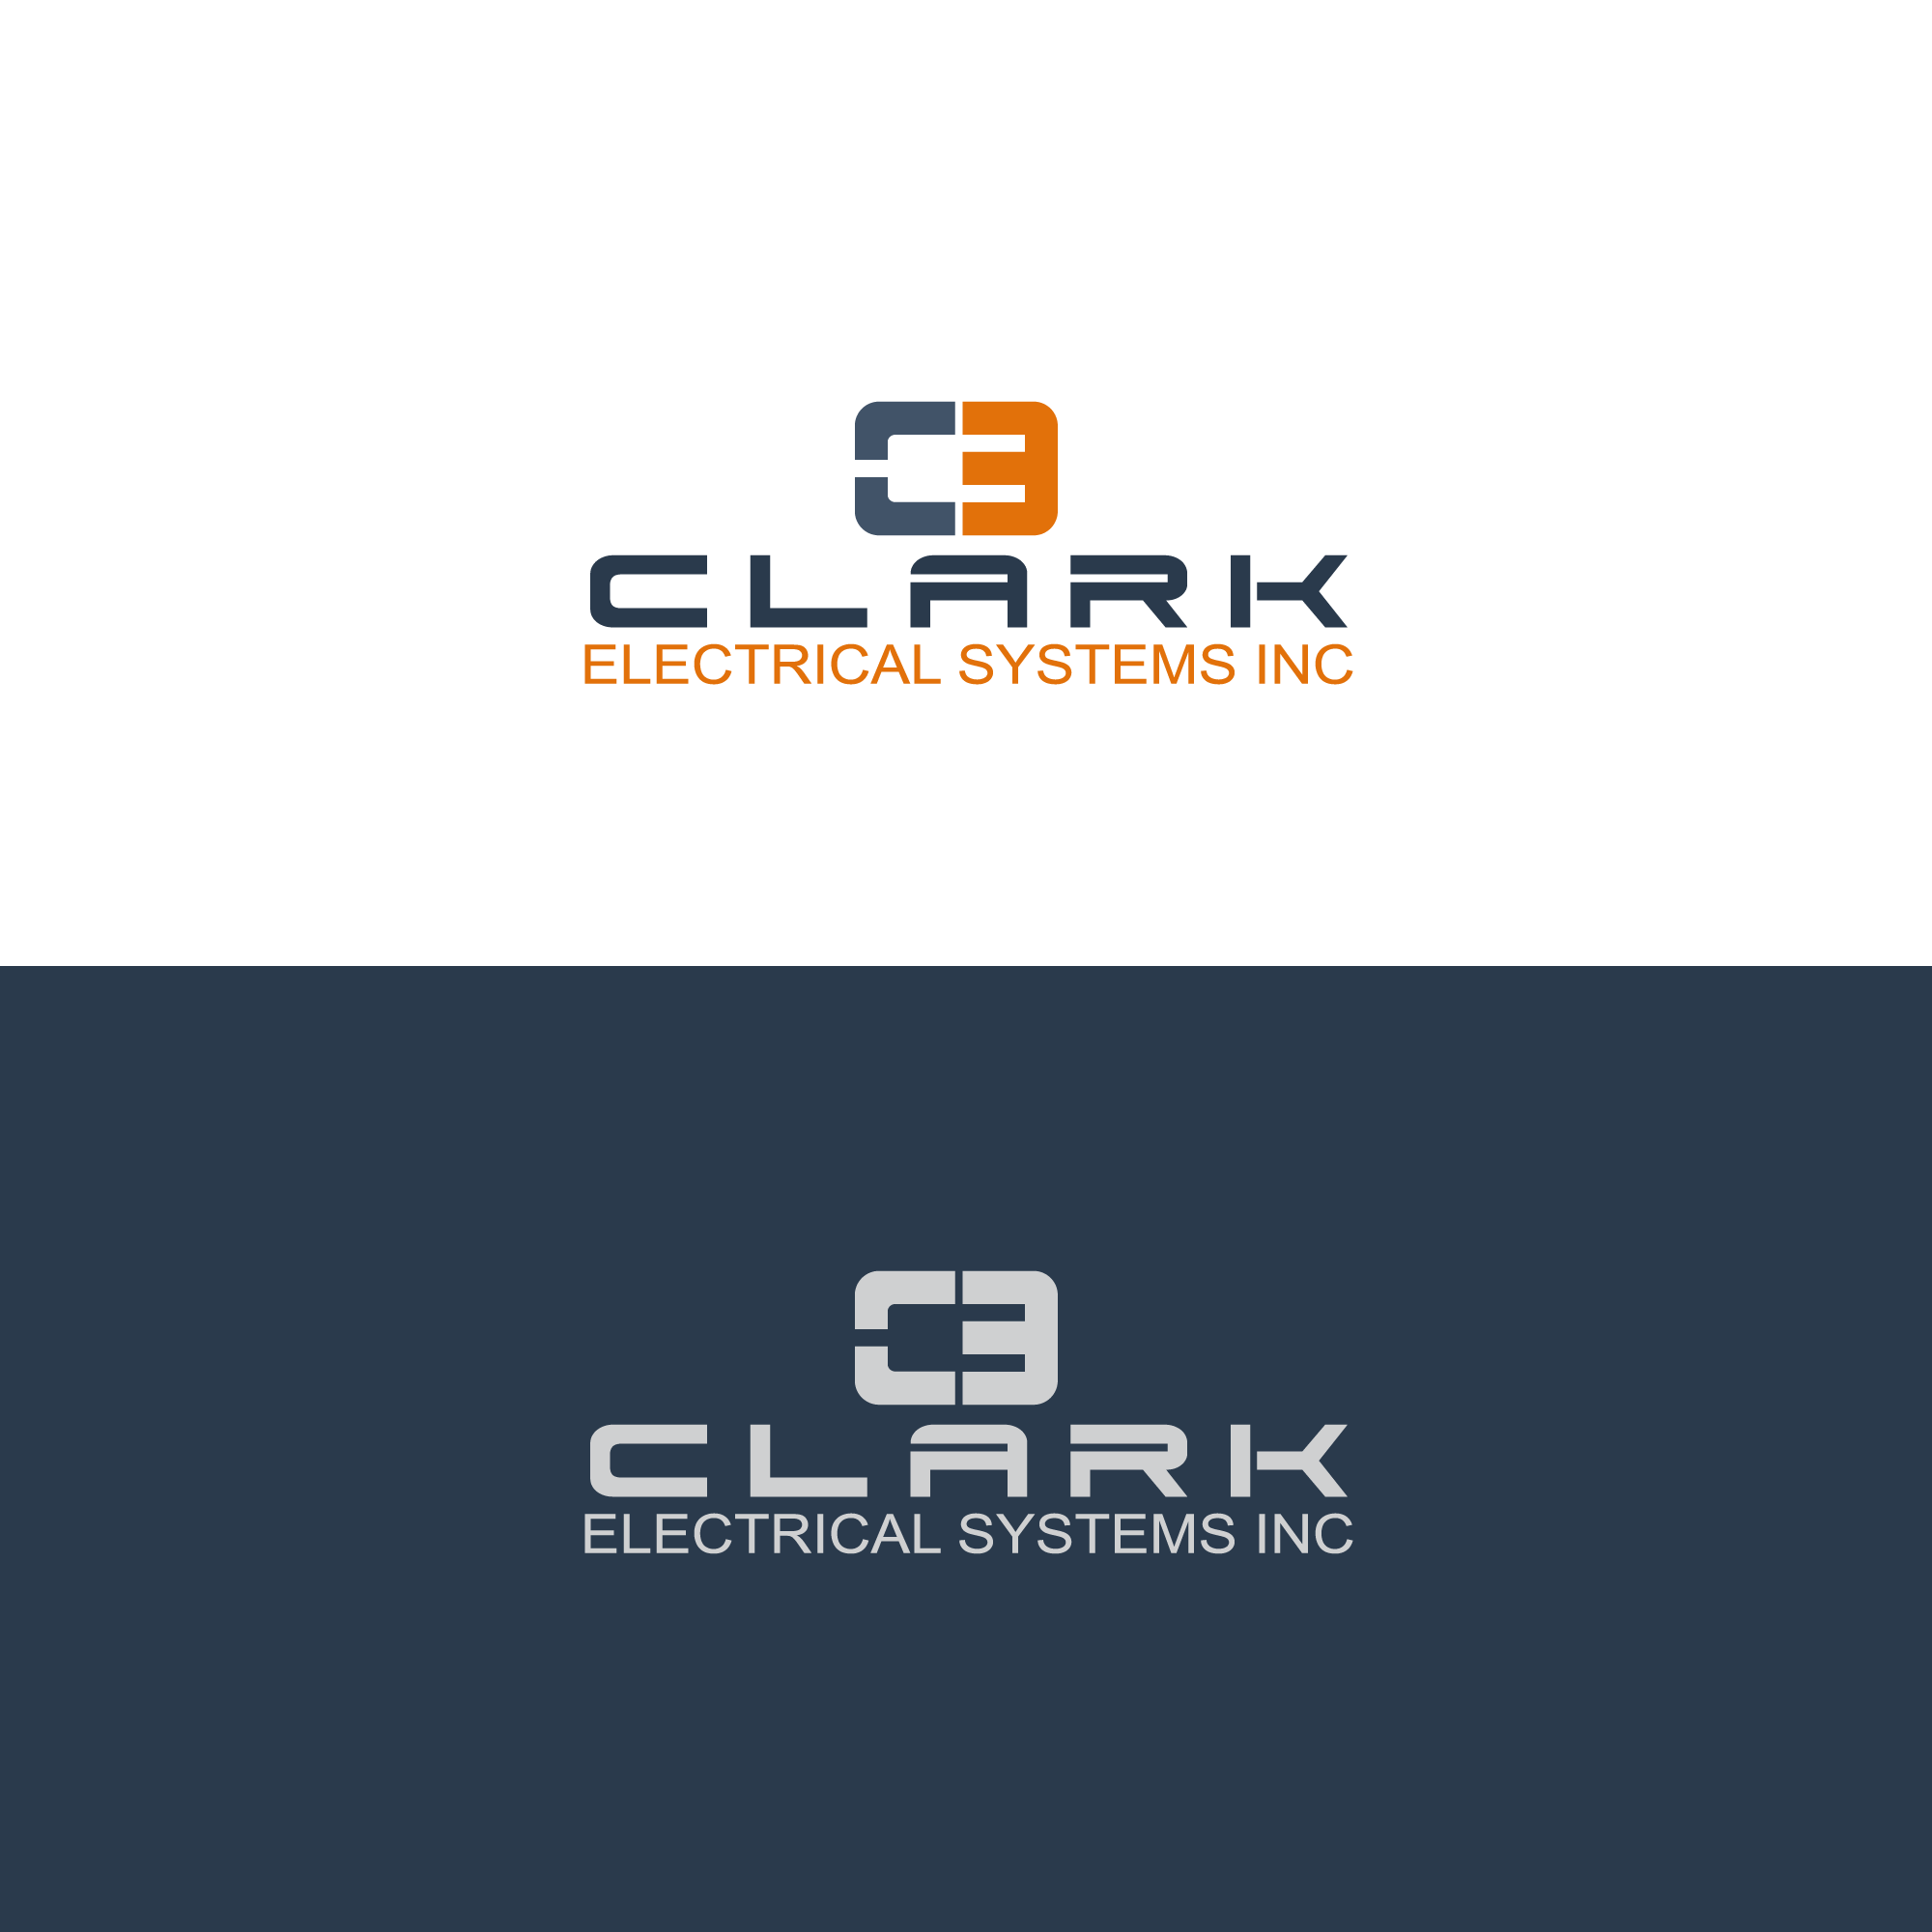 Logo Design by Runz - Entry No. 220 in the Logo Design Contest Artistic Logo Design for Clark Electrical Systems Inc..